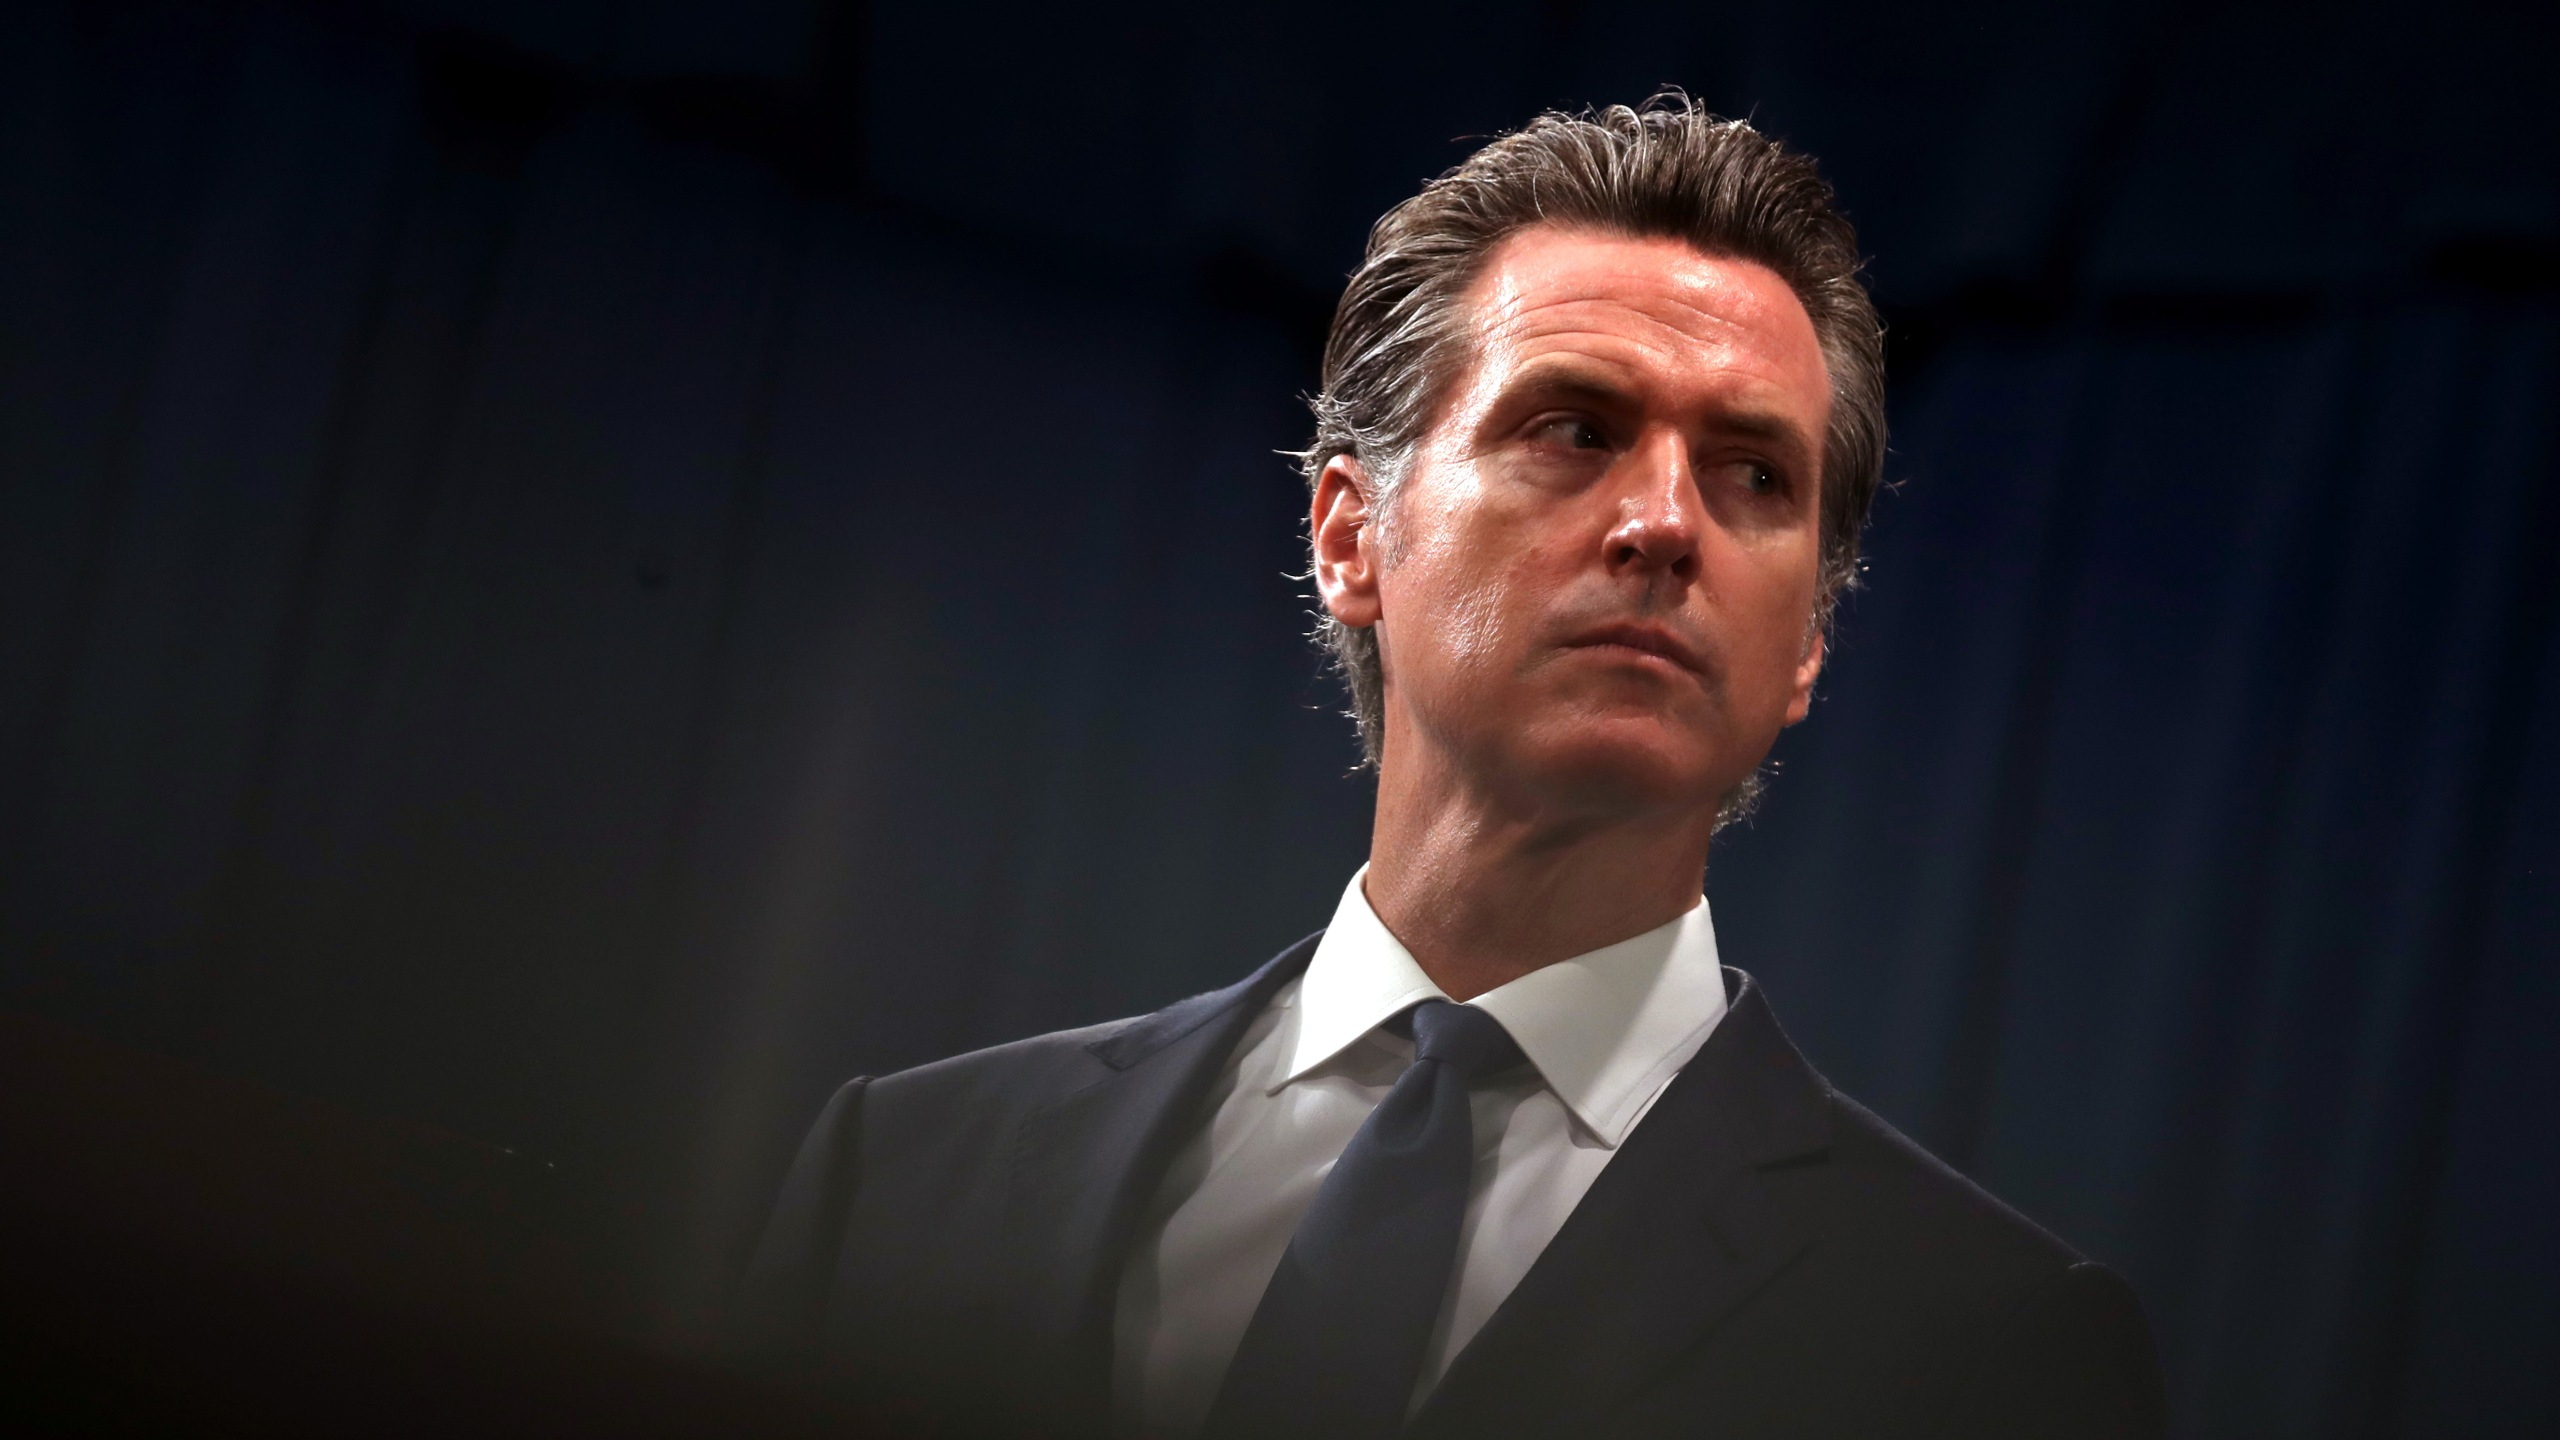 California Gov. Gavin Newsom looks on during a news conference with California attorney General Xavier Becerra at the California State Capitol on August 16, 2019 in Sacramento, California. (Credit: Justin Sullivan/Getty Images)